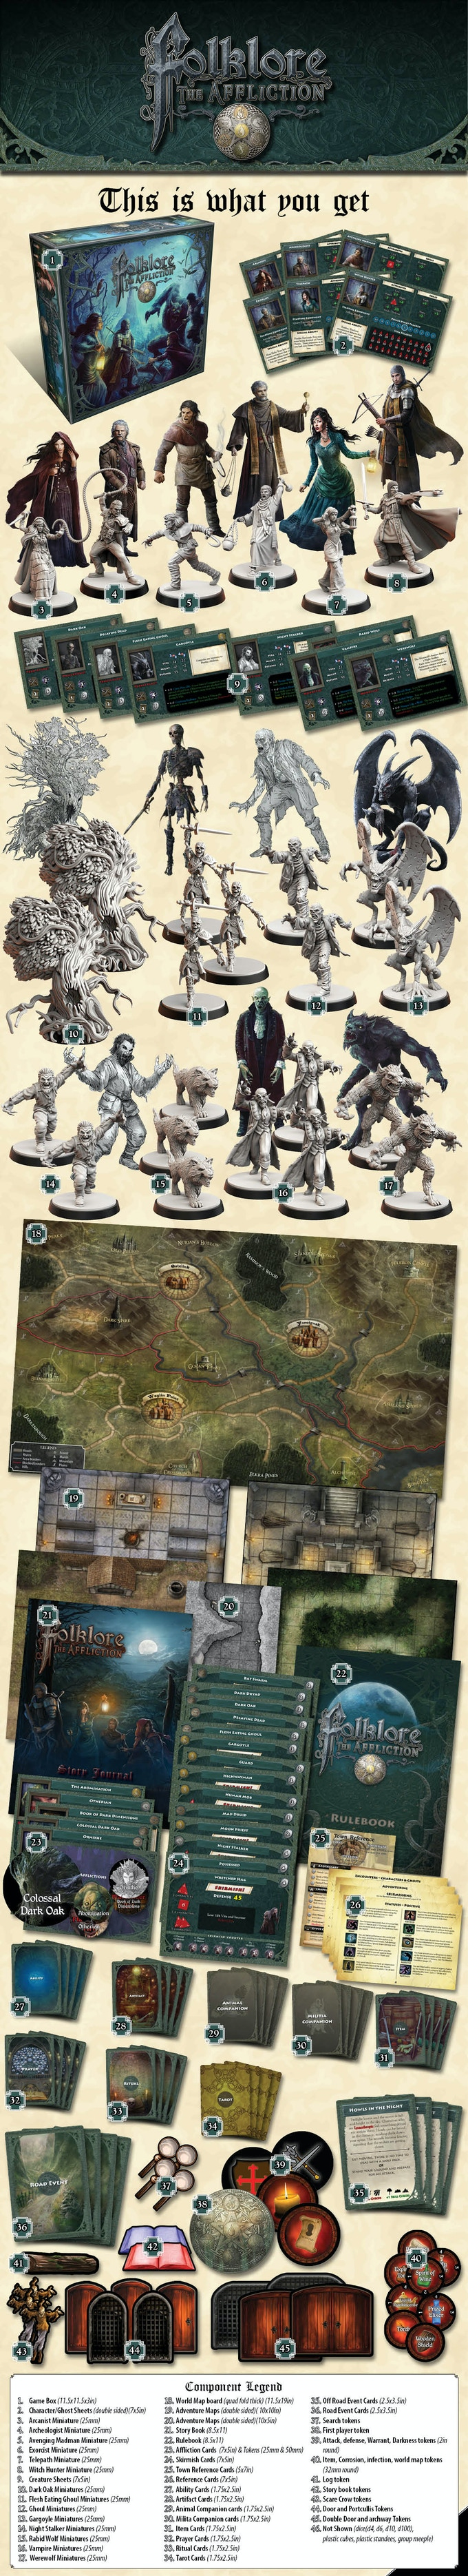 Descent journeys in the dark second edition 187 forums 187 general - Gain Or Hire The Townsfolk And The Animals In This Hell Oppressed Place And Lead Them Into The Darkness As You Face The Evils That Threaten To Devour You